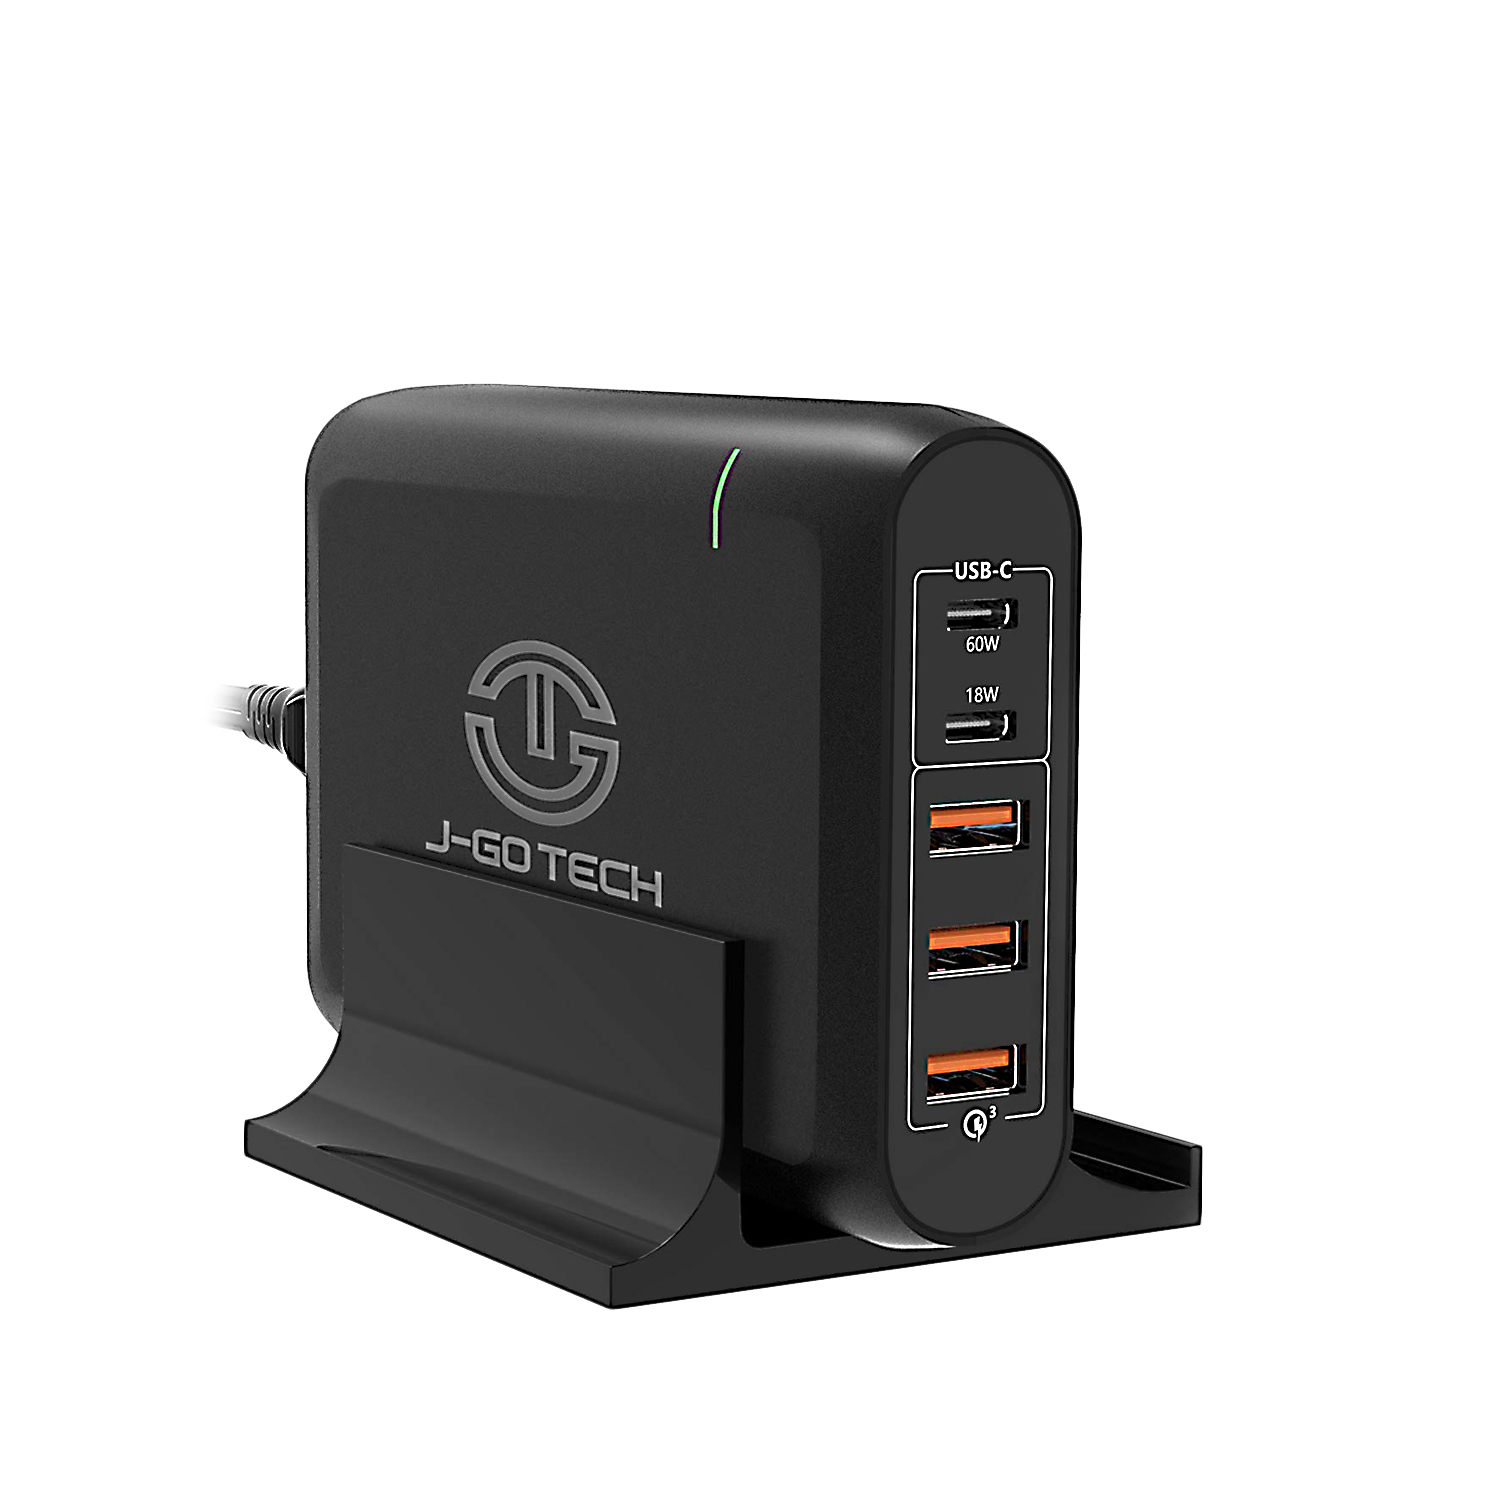 J-Go Tech 96W Dual Type-C PD Travel Adapter + Desktop Charger by J-Go Tech